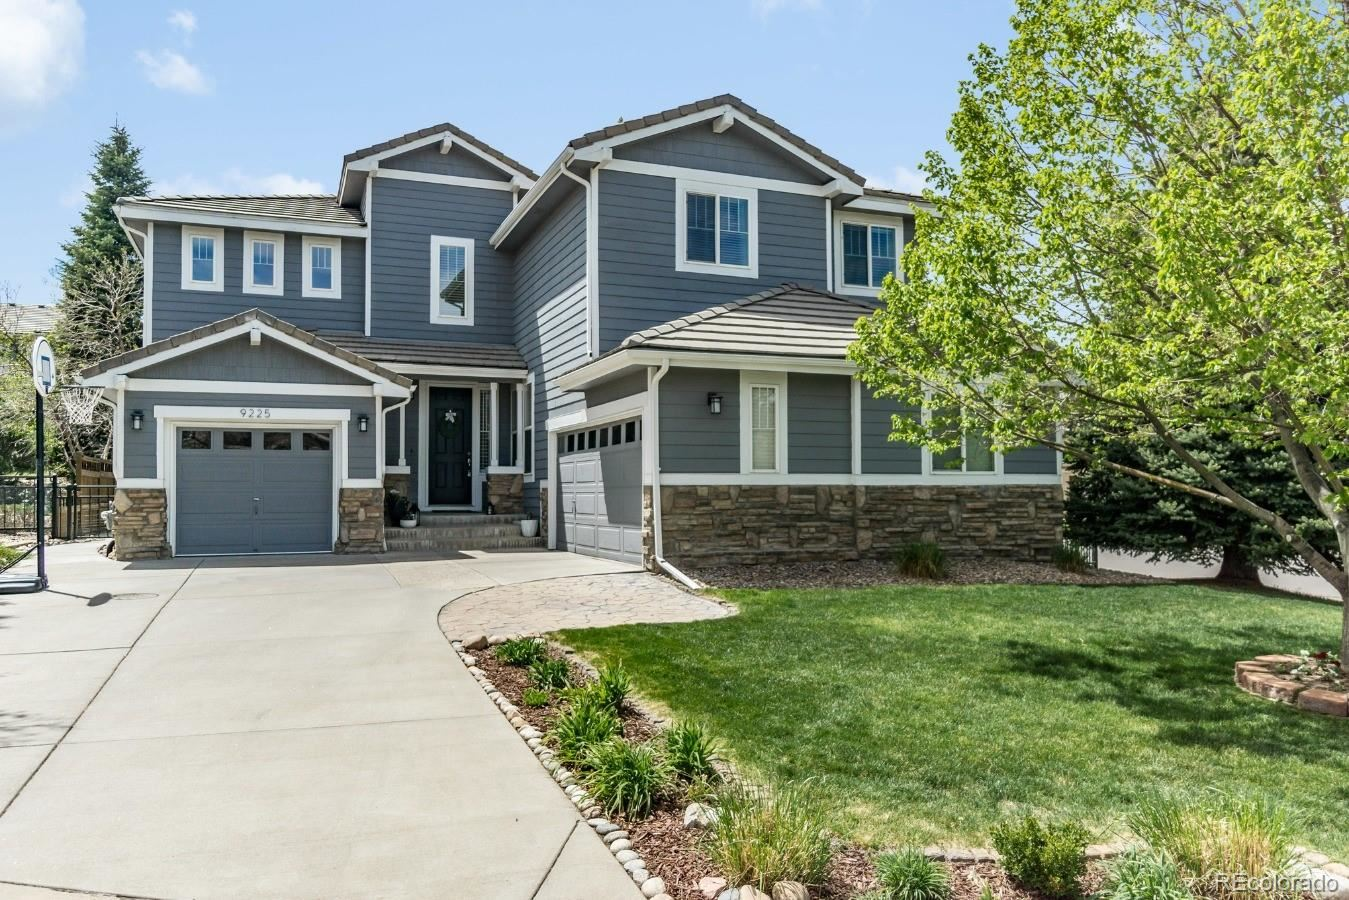 9225 Aspen Creek Way, Highlands Ranch, CO 80129 - #: 8773427